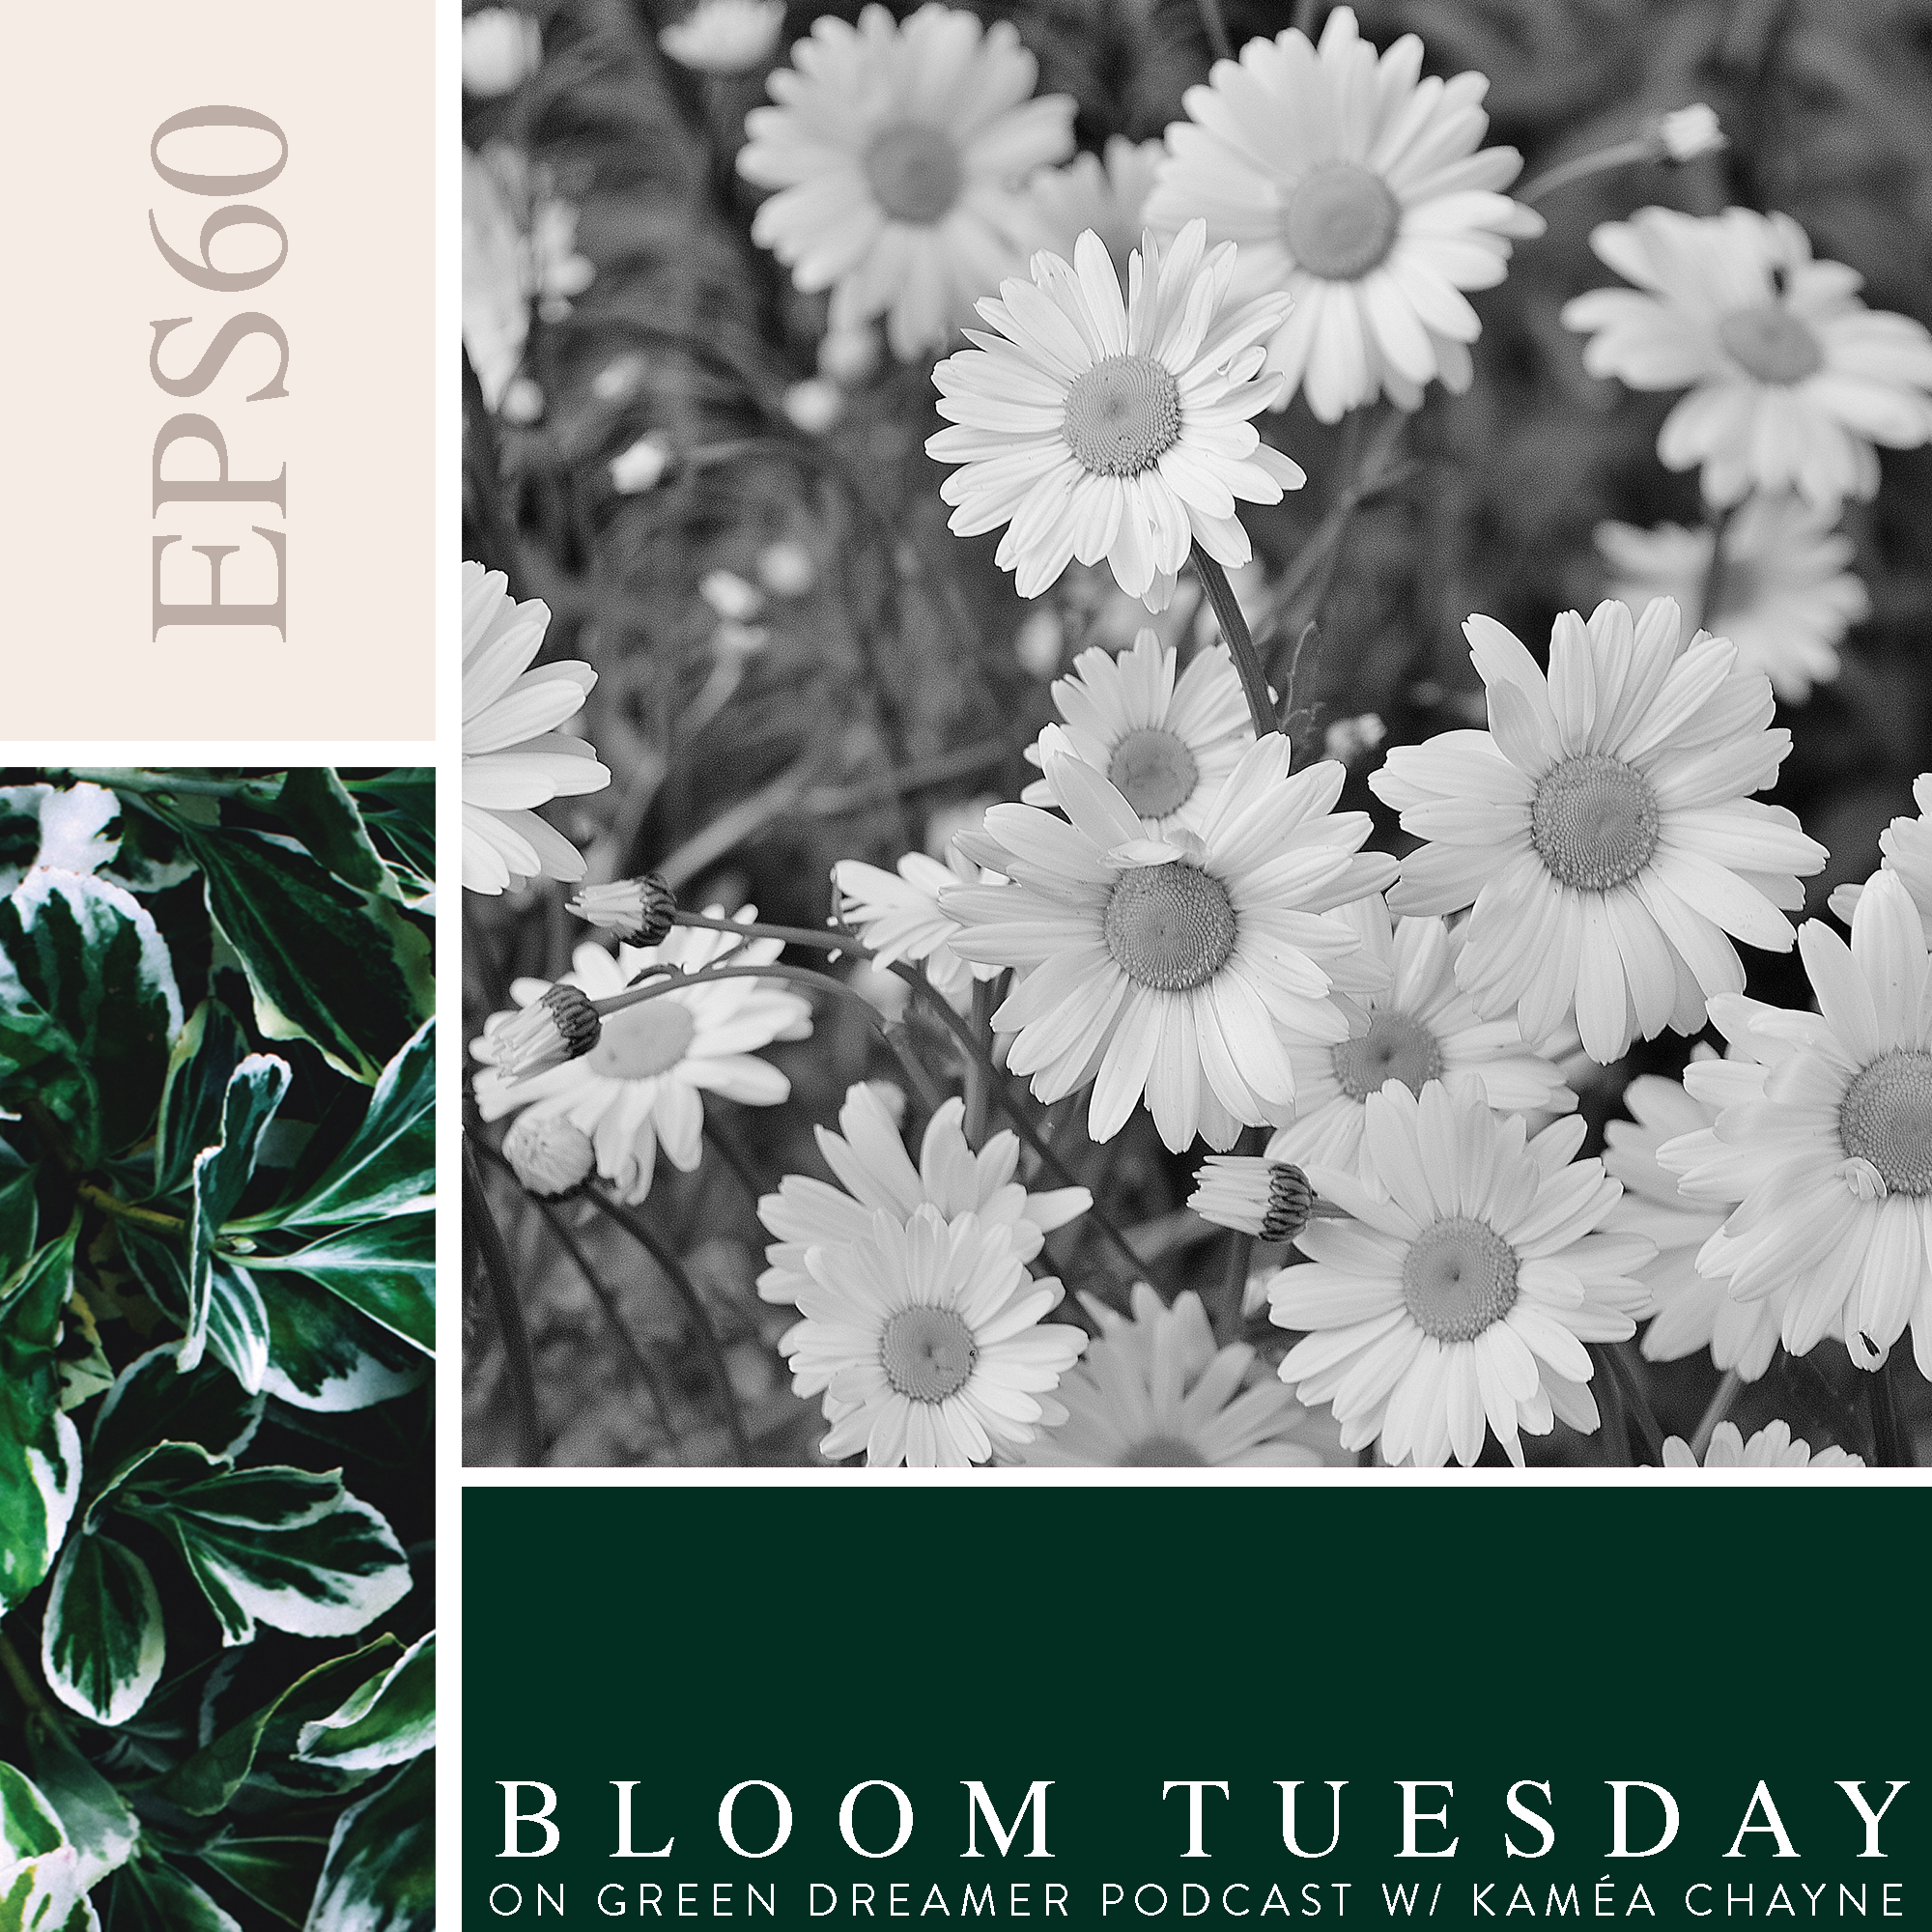 60) BLOOM TUESDAY